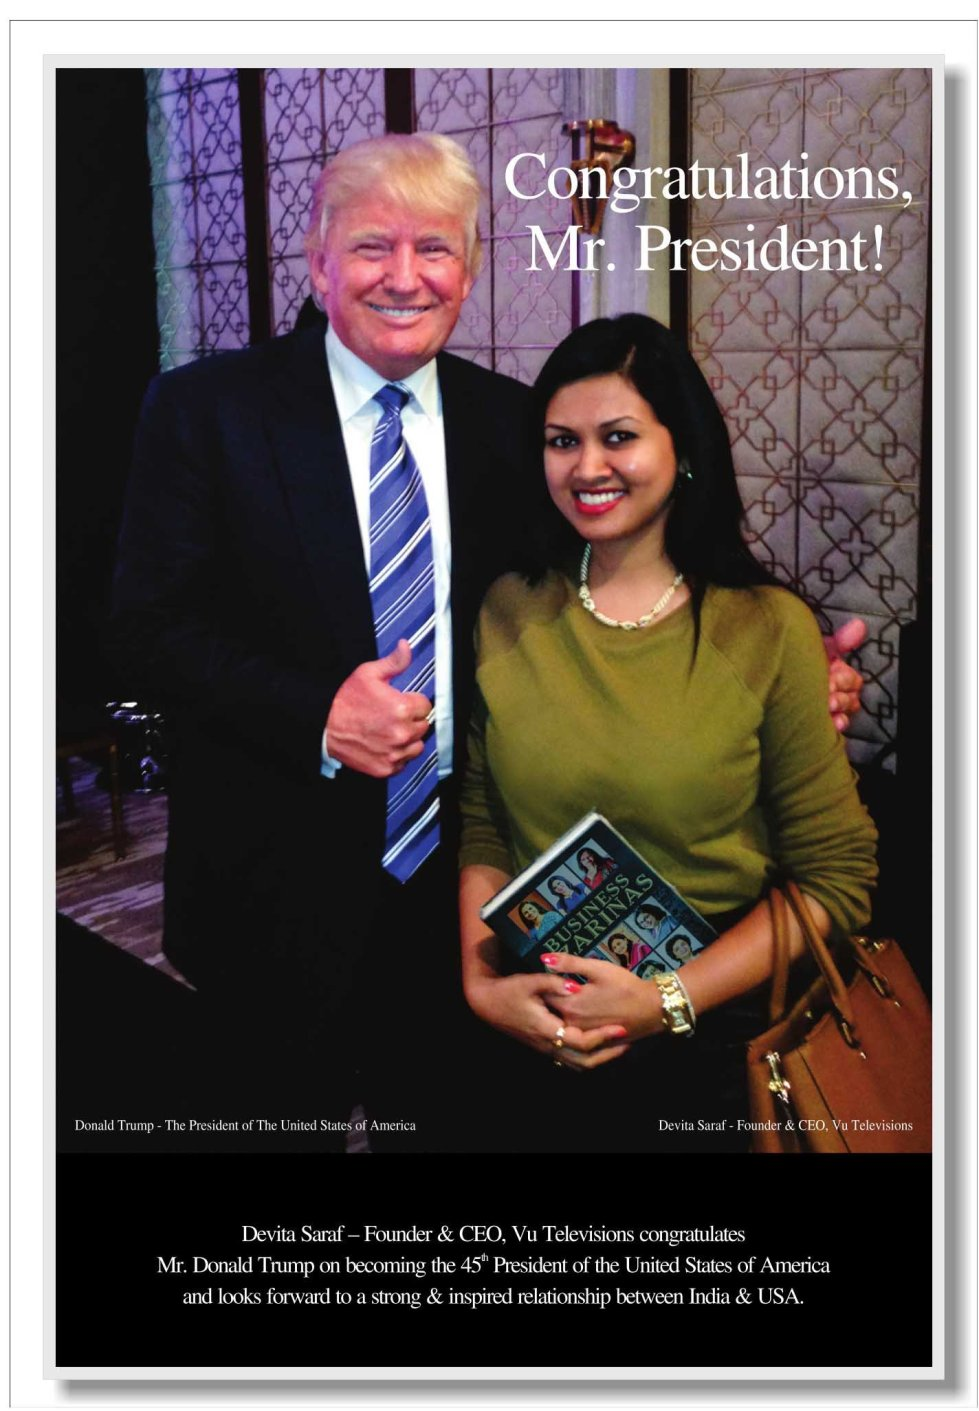 Vu-Televisions-CEO-Devita-Saraf-congratulates-Donald-Trump-on-his-Presidential-inauguration-1.jpg